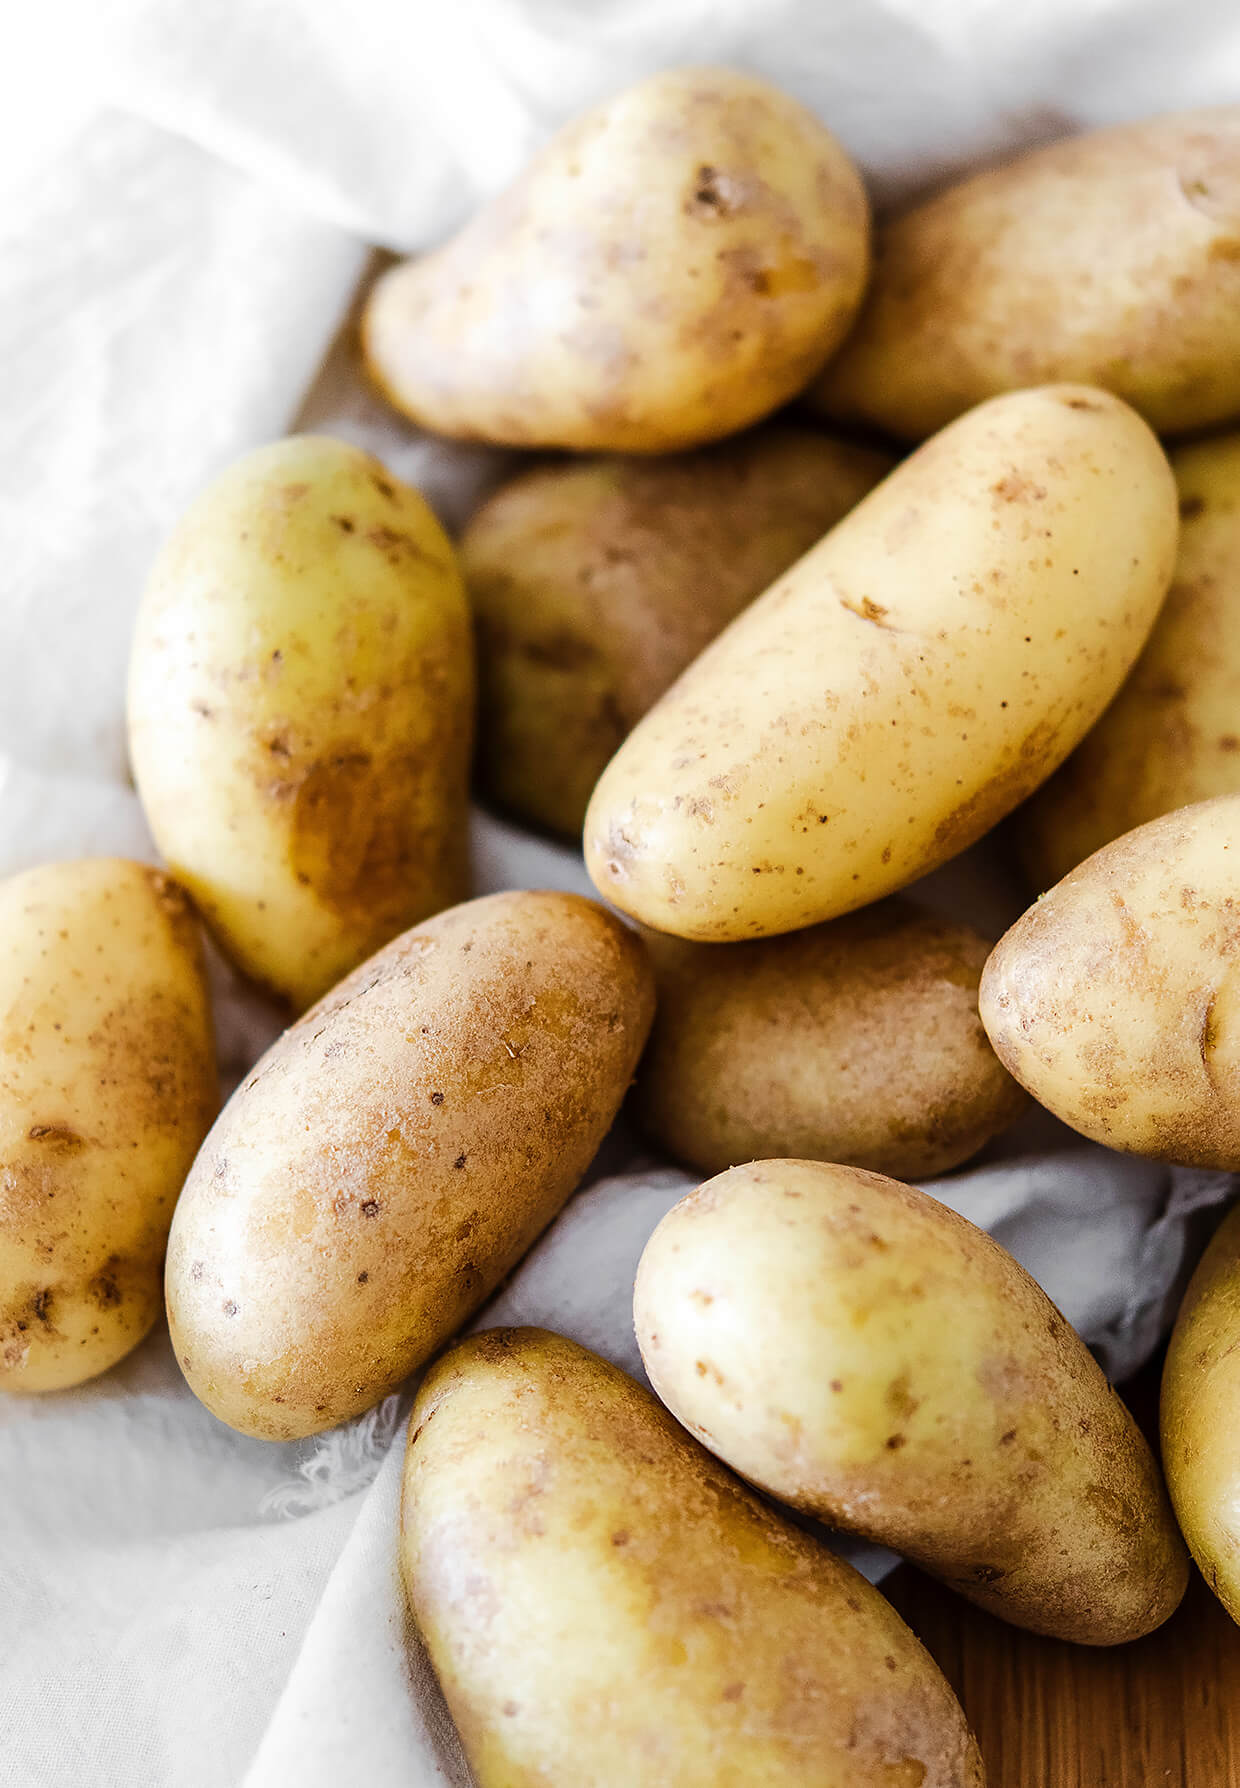 new young potatoes with skins, close up